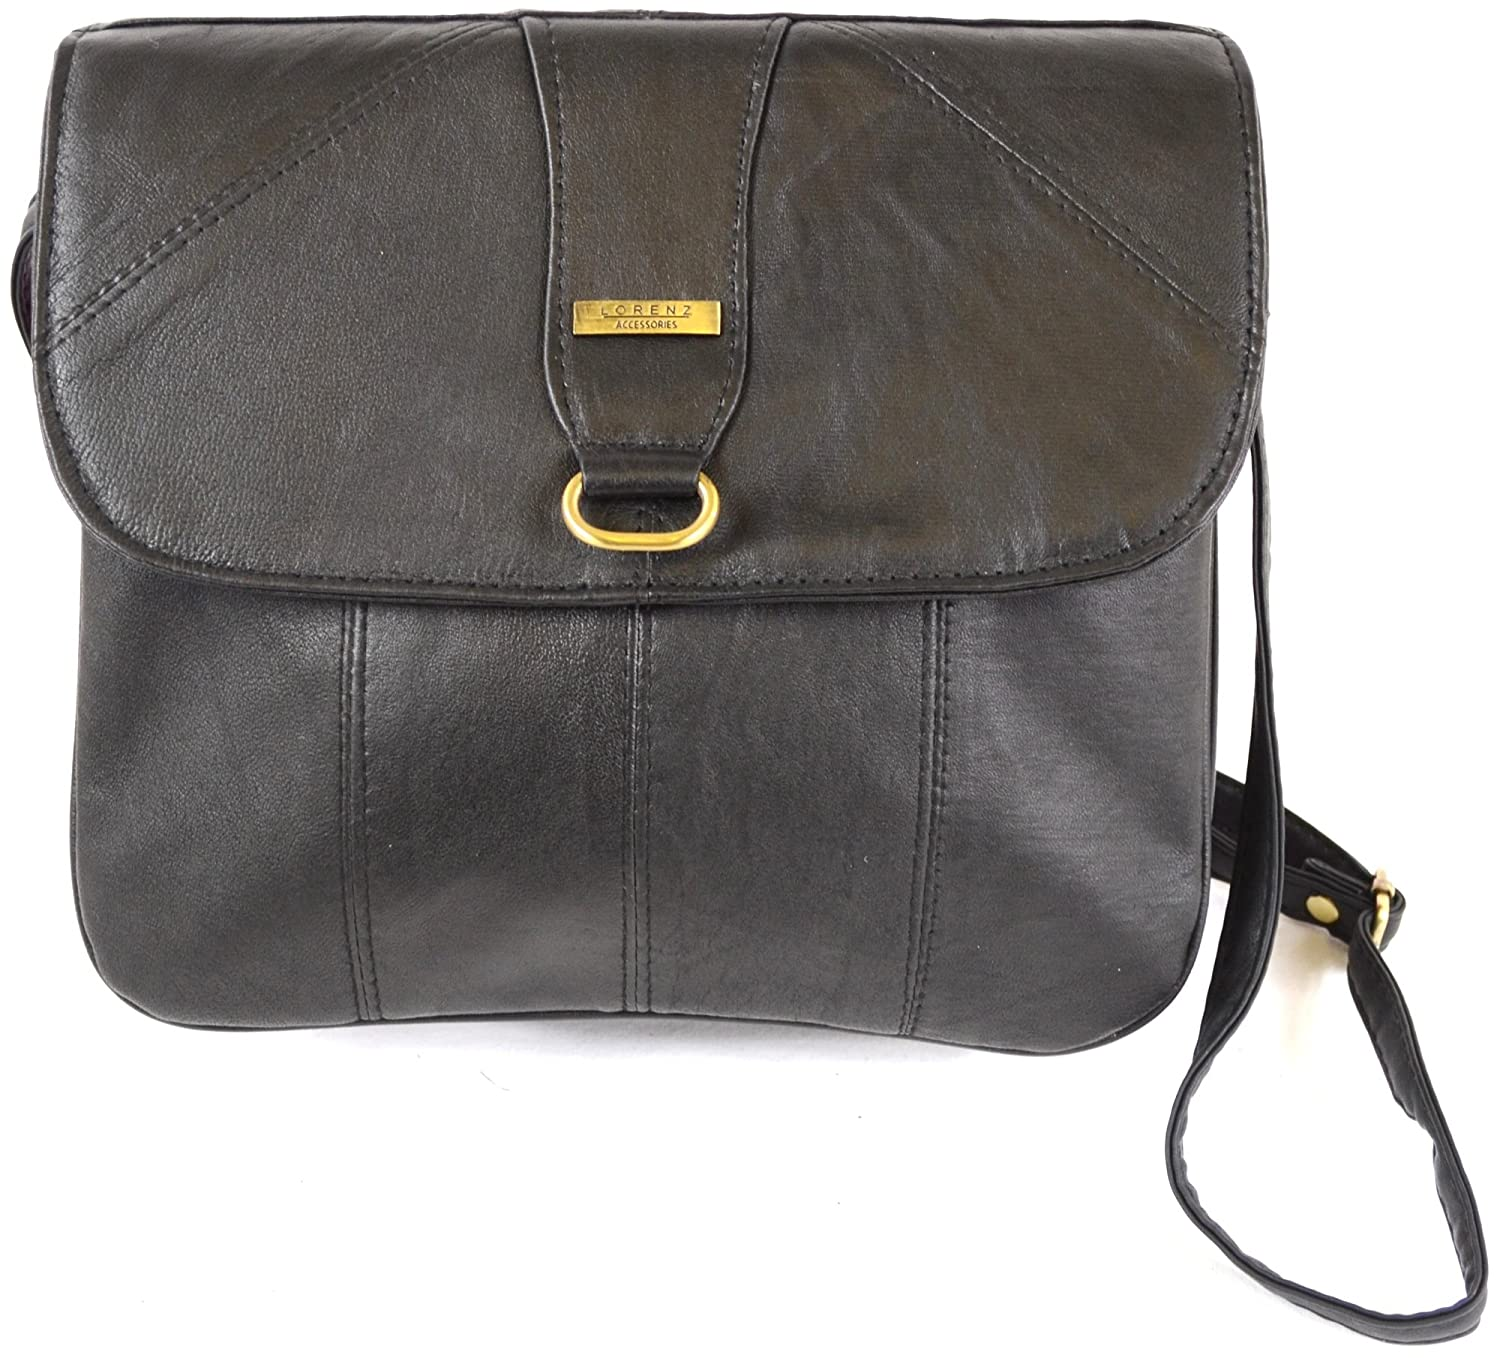 Ladies Super Soft Nappa Leather Shoulder Bag / Cross Body Bag ...